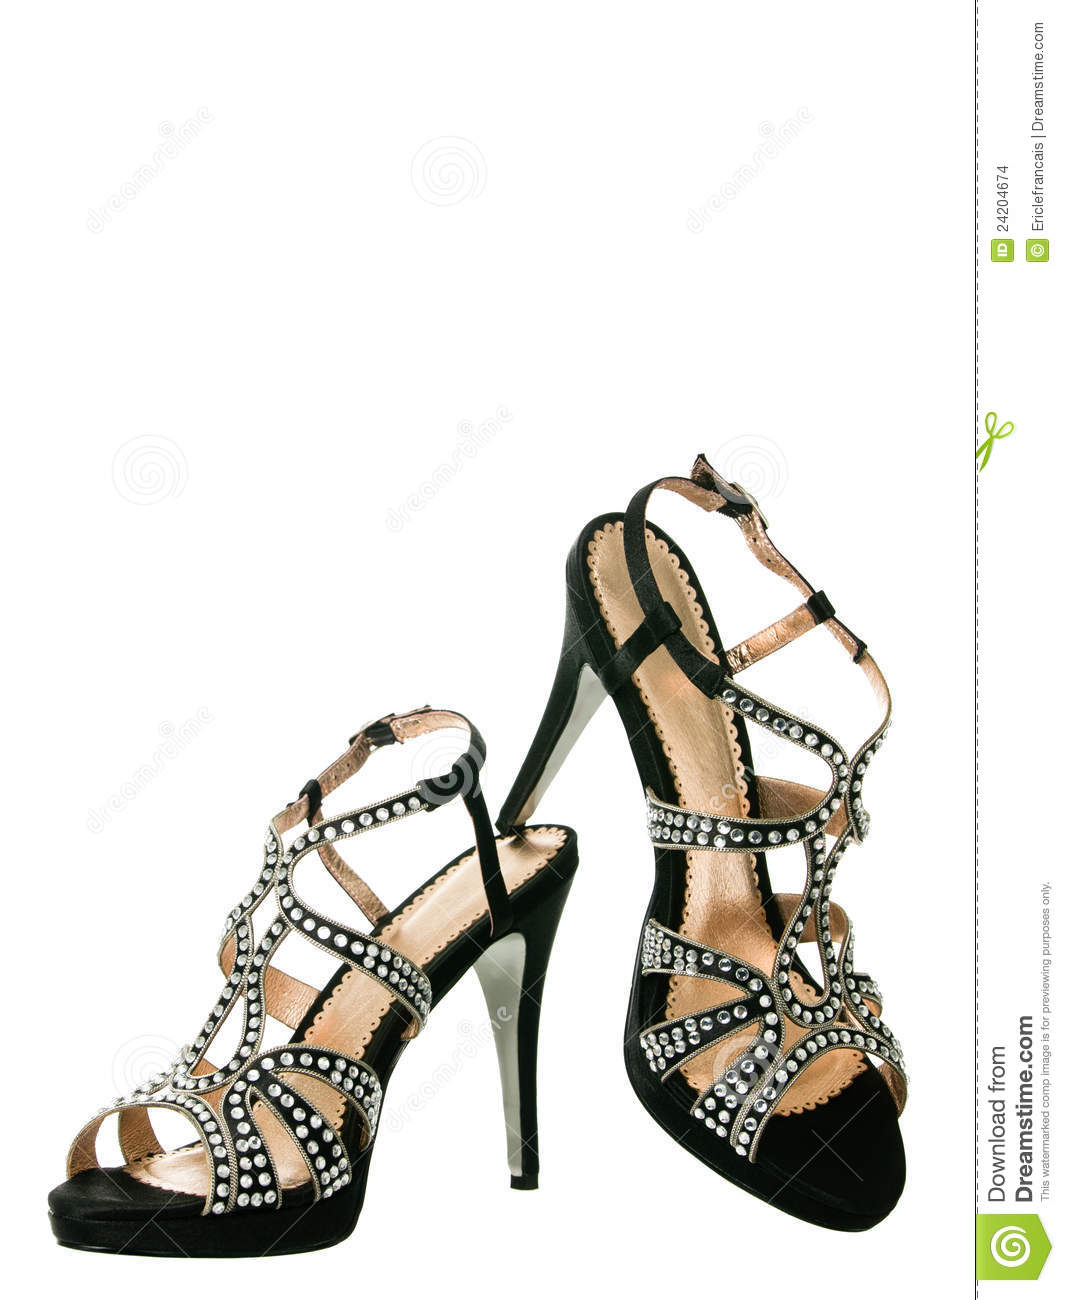 shoes,sexy high heel shoes,sexy shoes,dress shoes,women's shoes